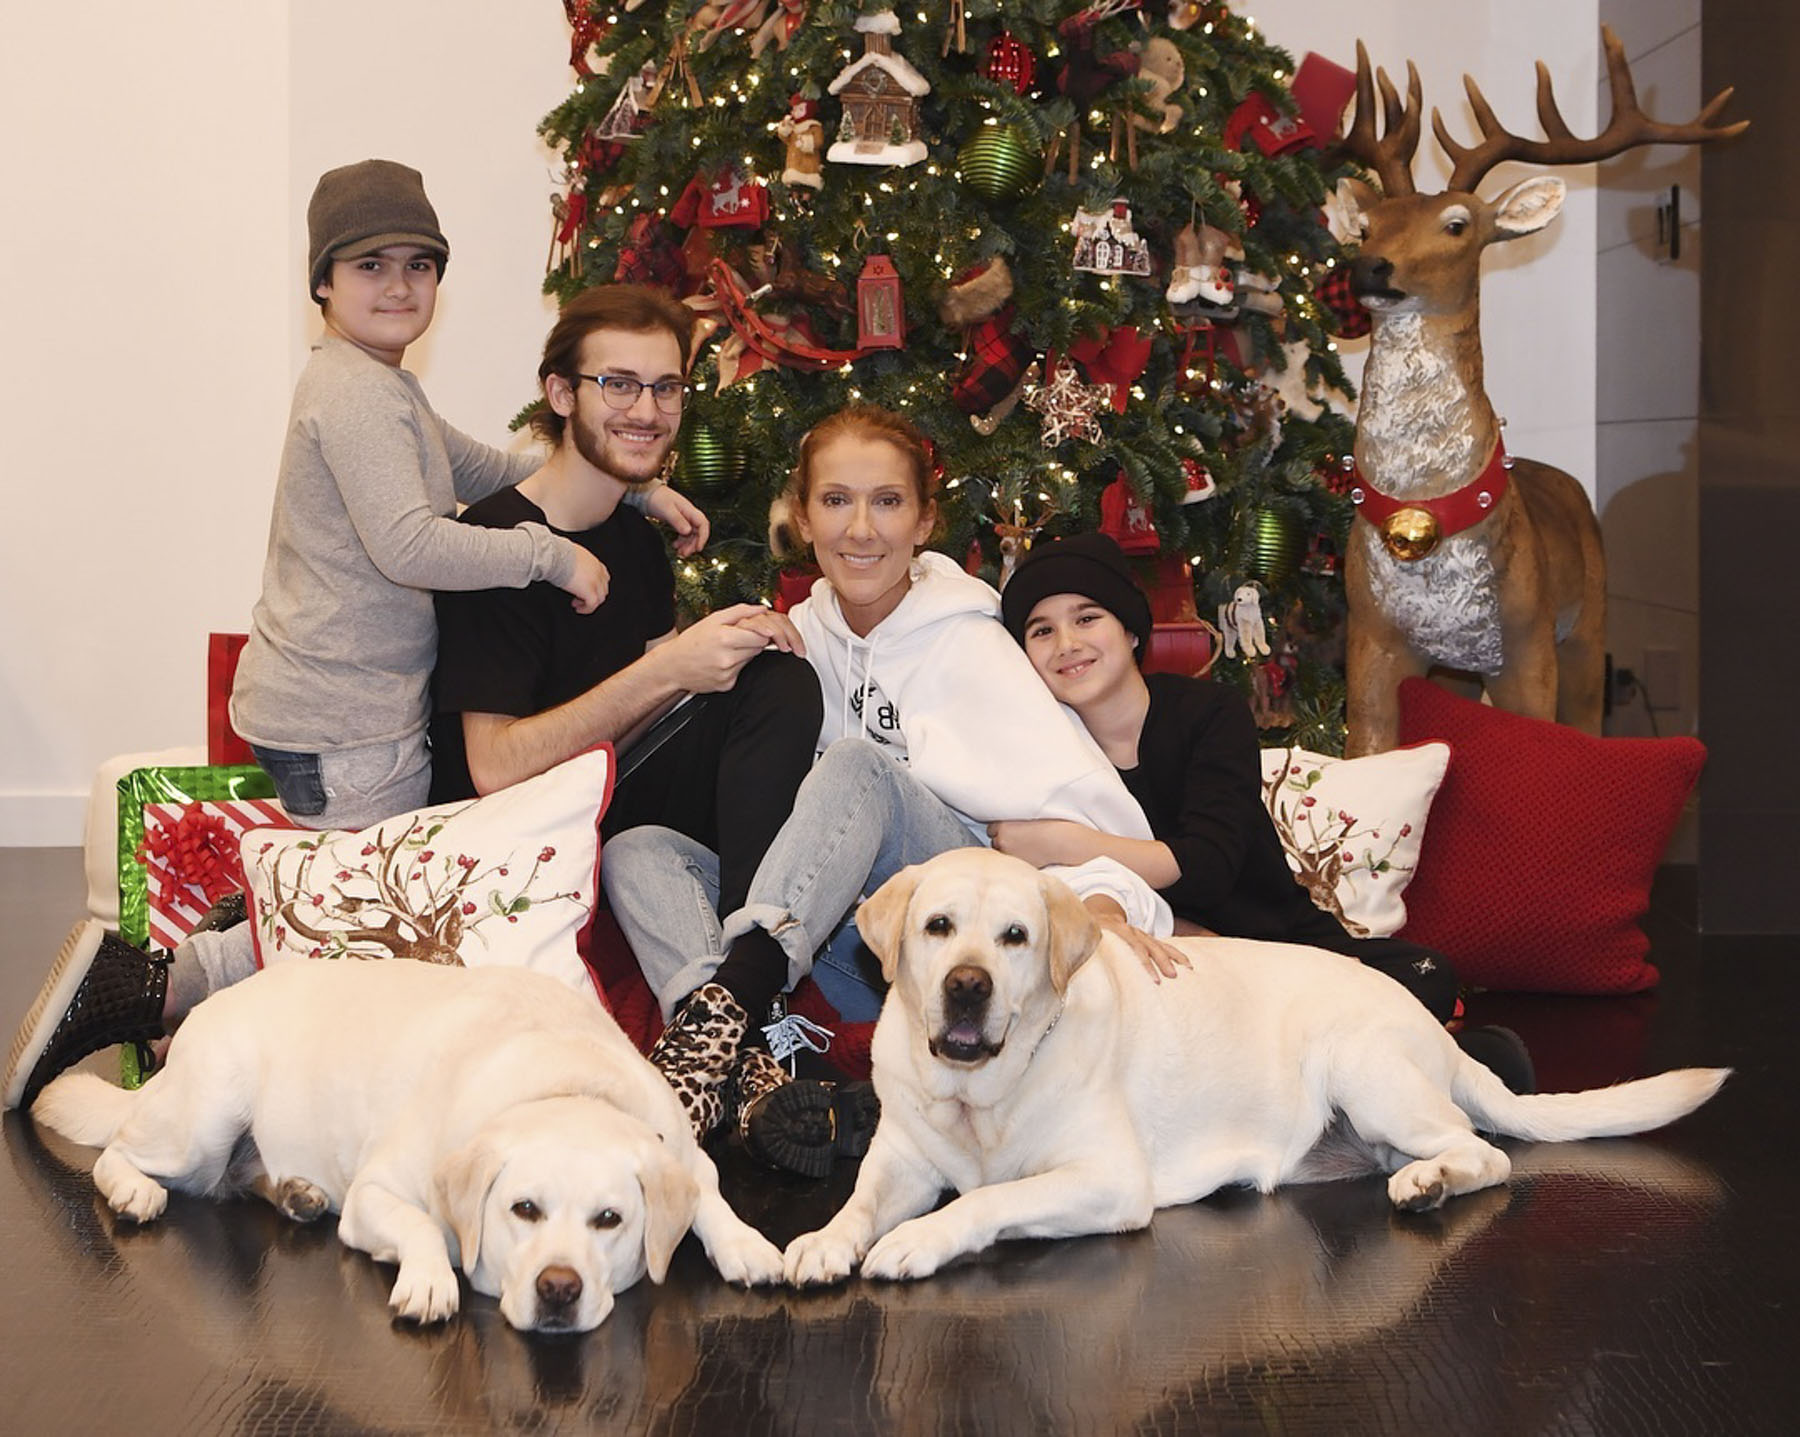 Celine Dion Smiles With Kids In Sweet Christmas Photo People Com